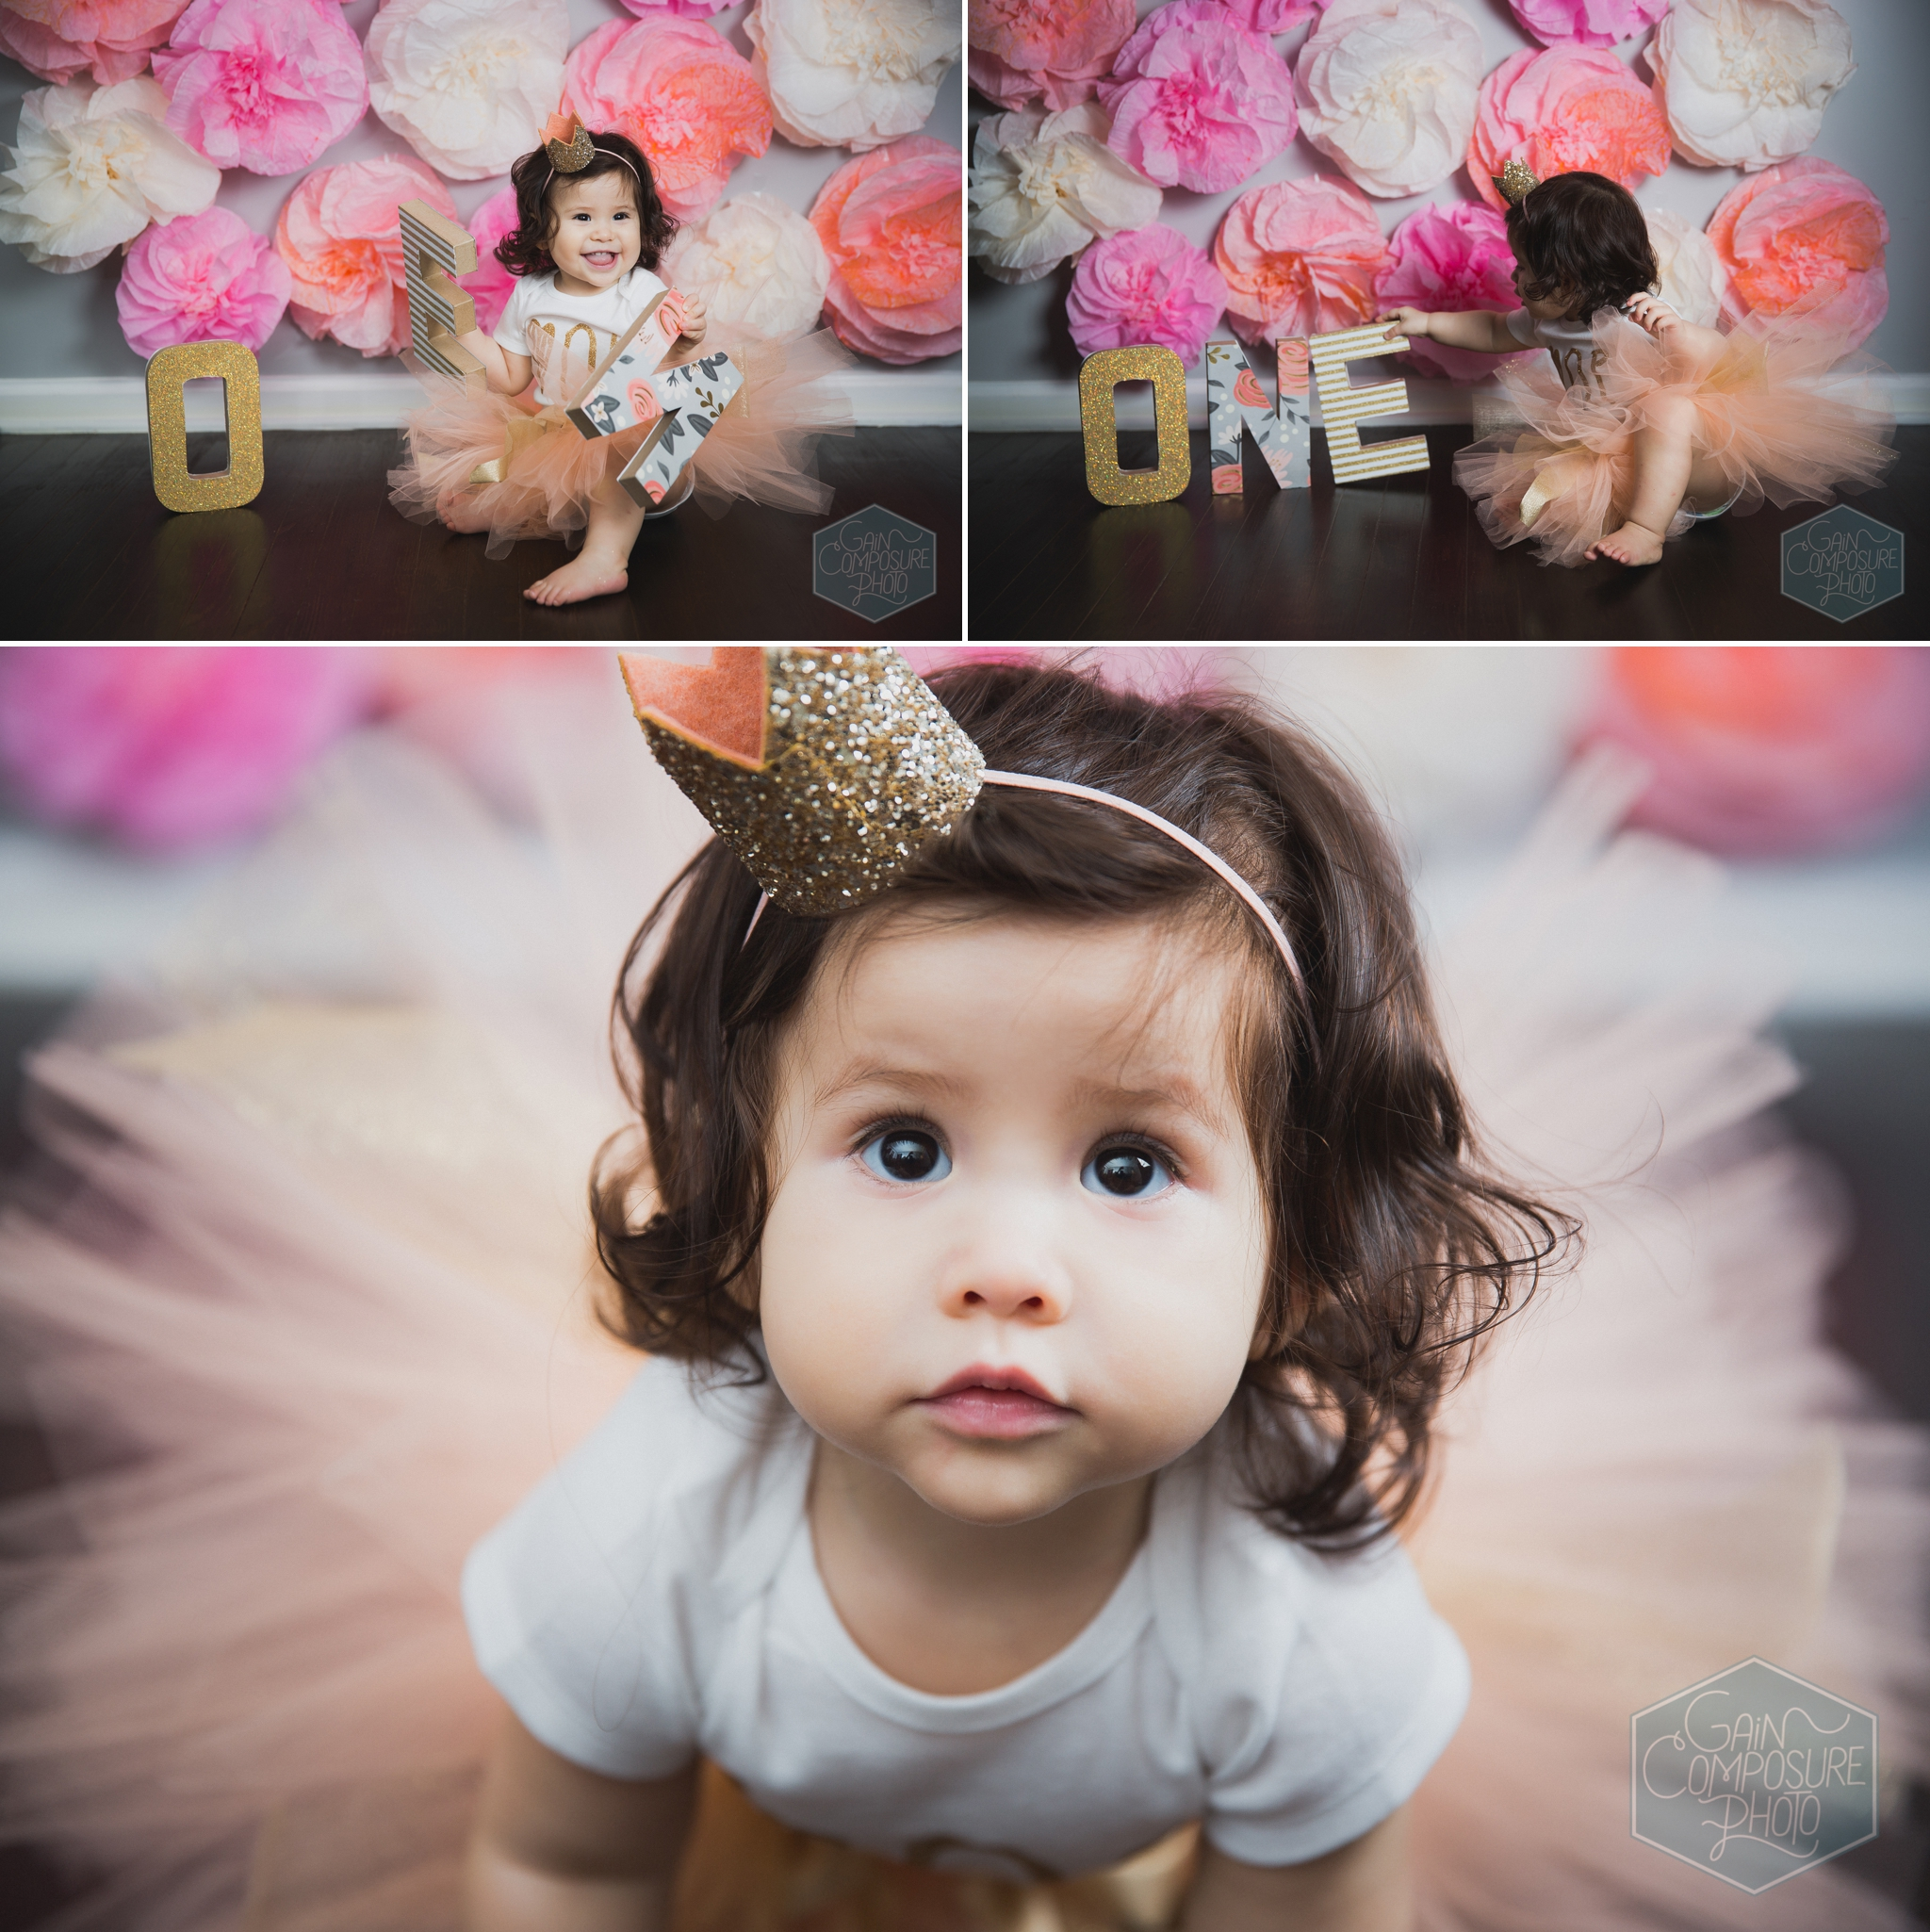 one year old cake smash session paper filter background in north carolina